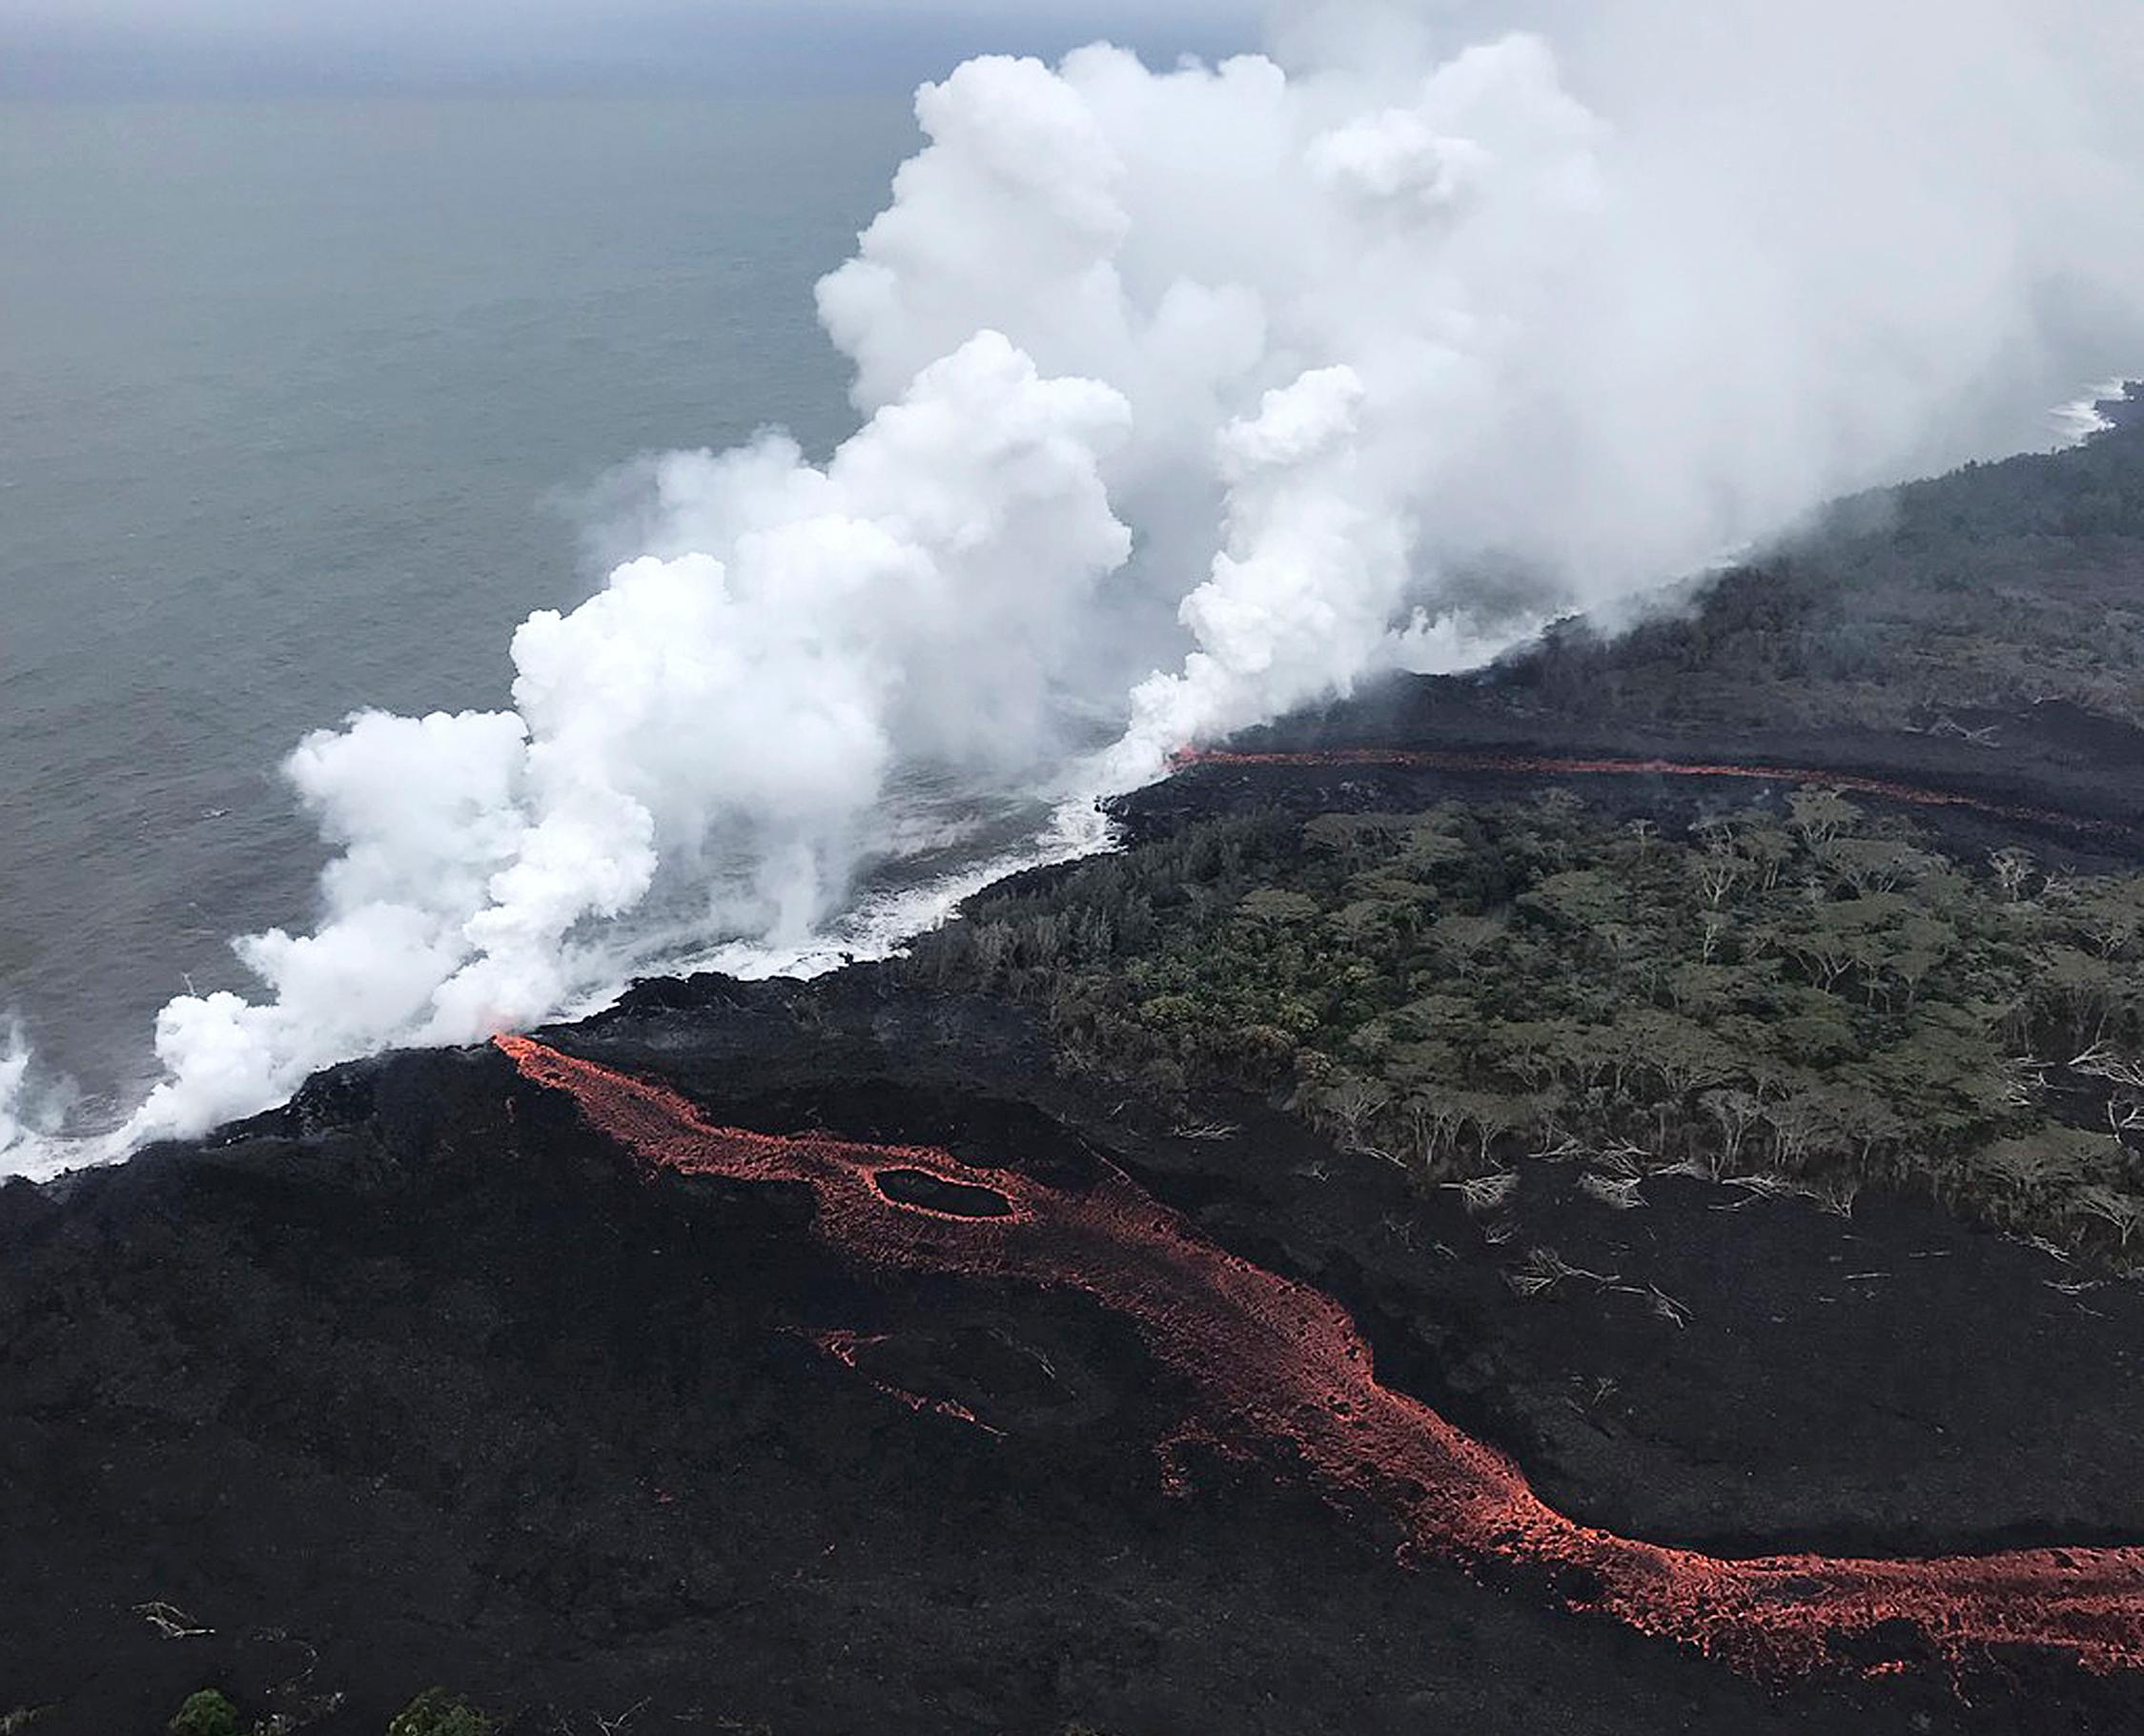 This image provided by the U.S. Geological Survey shows lava{ }as it continues to enter the sea at two locations near Pahoa, Hawaii, Monday, May 21, 2018. Lava from Hawaii's Kilauea volcano is pouring into the sea and setting off a chemical reaction that creates giant clouds of acid and fine glass. (U.S. Geological Survey via AP)